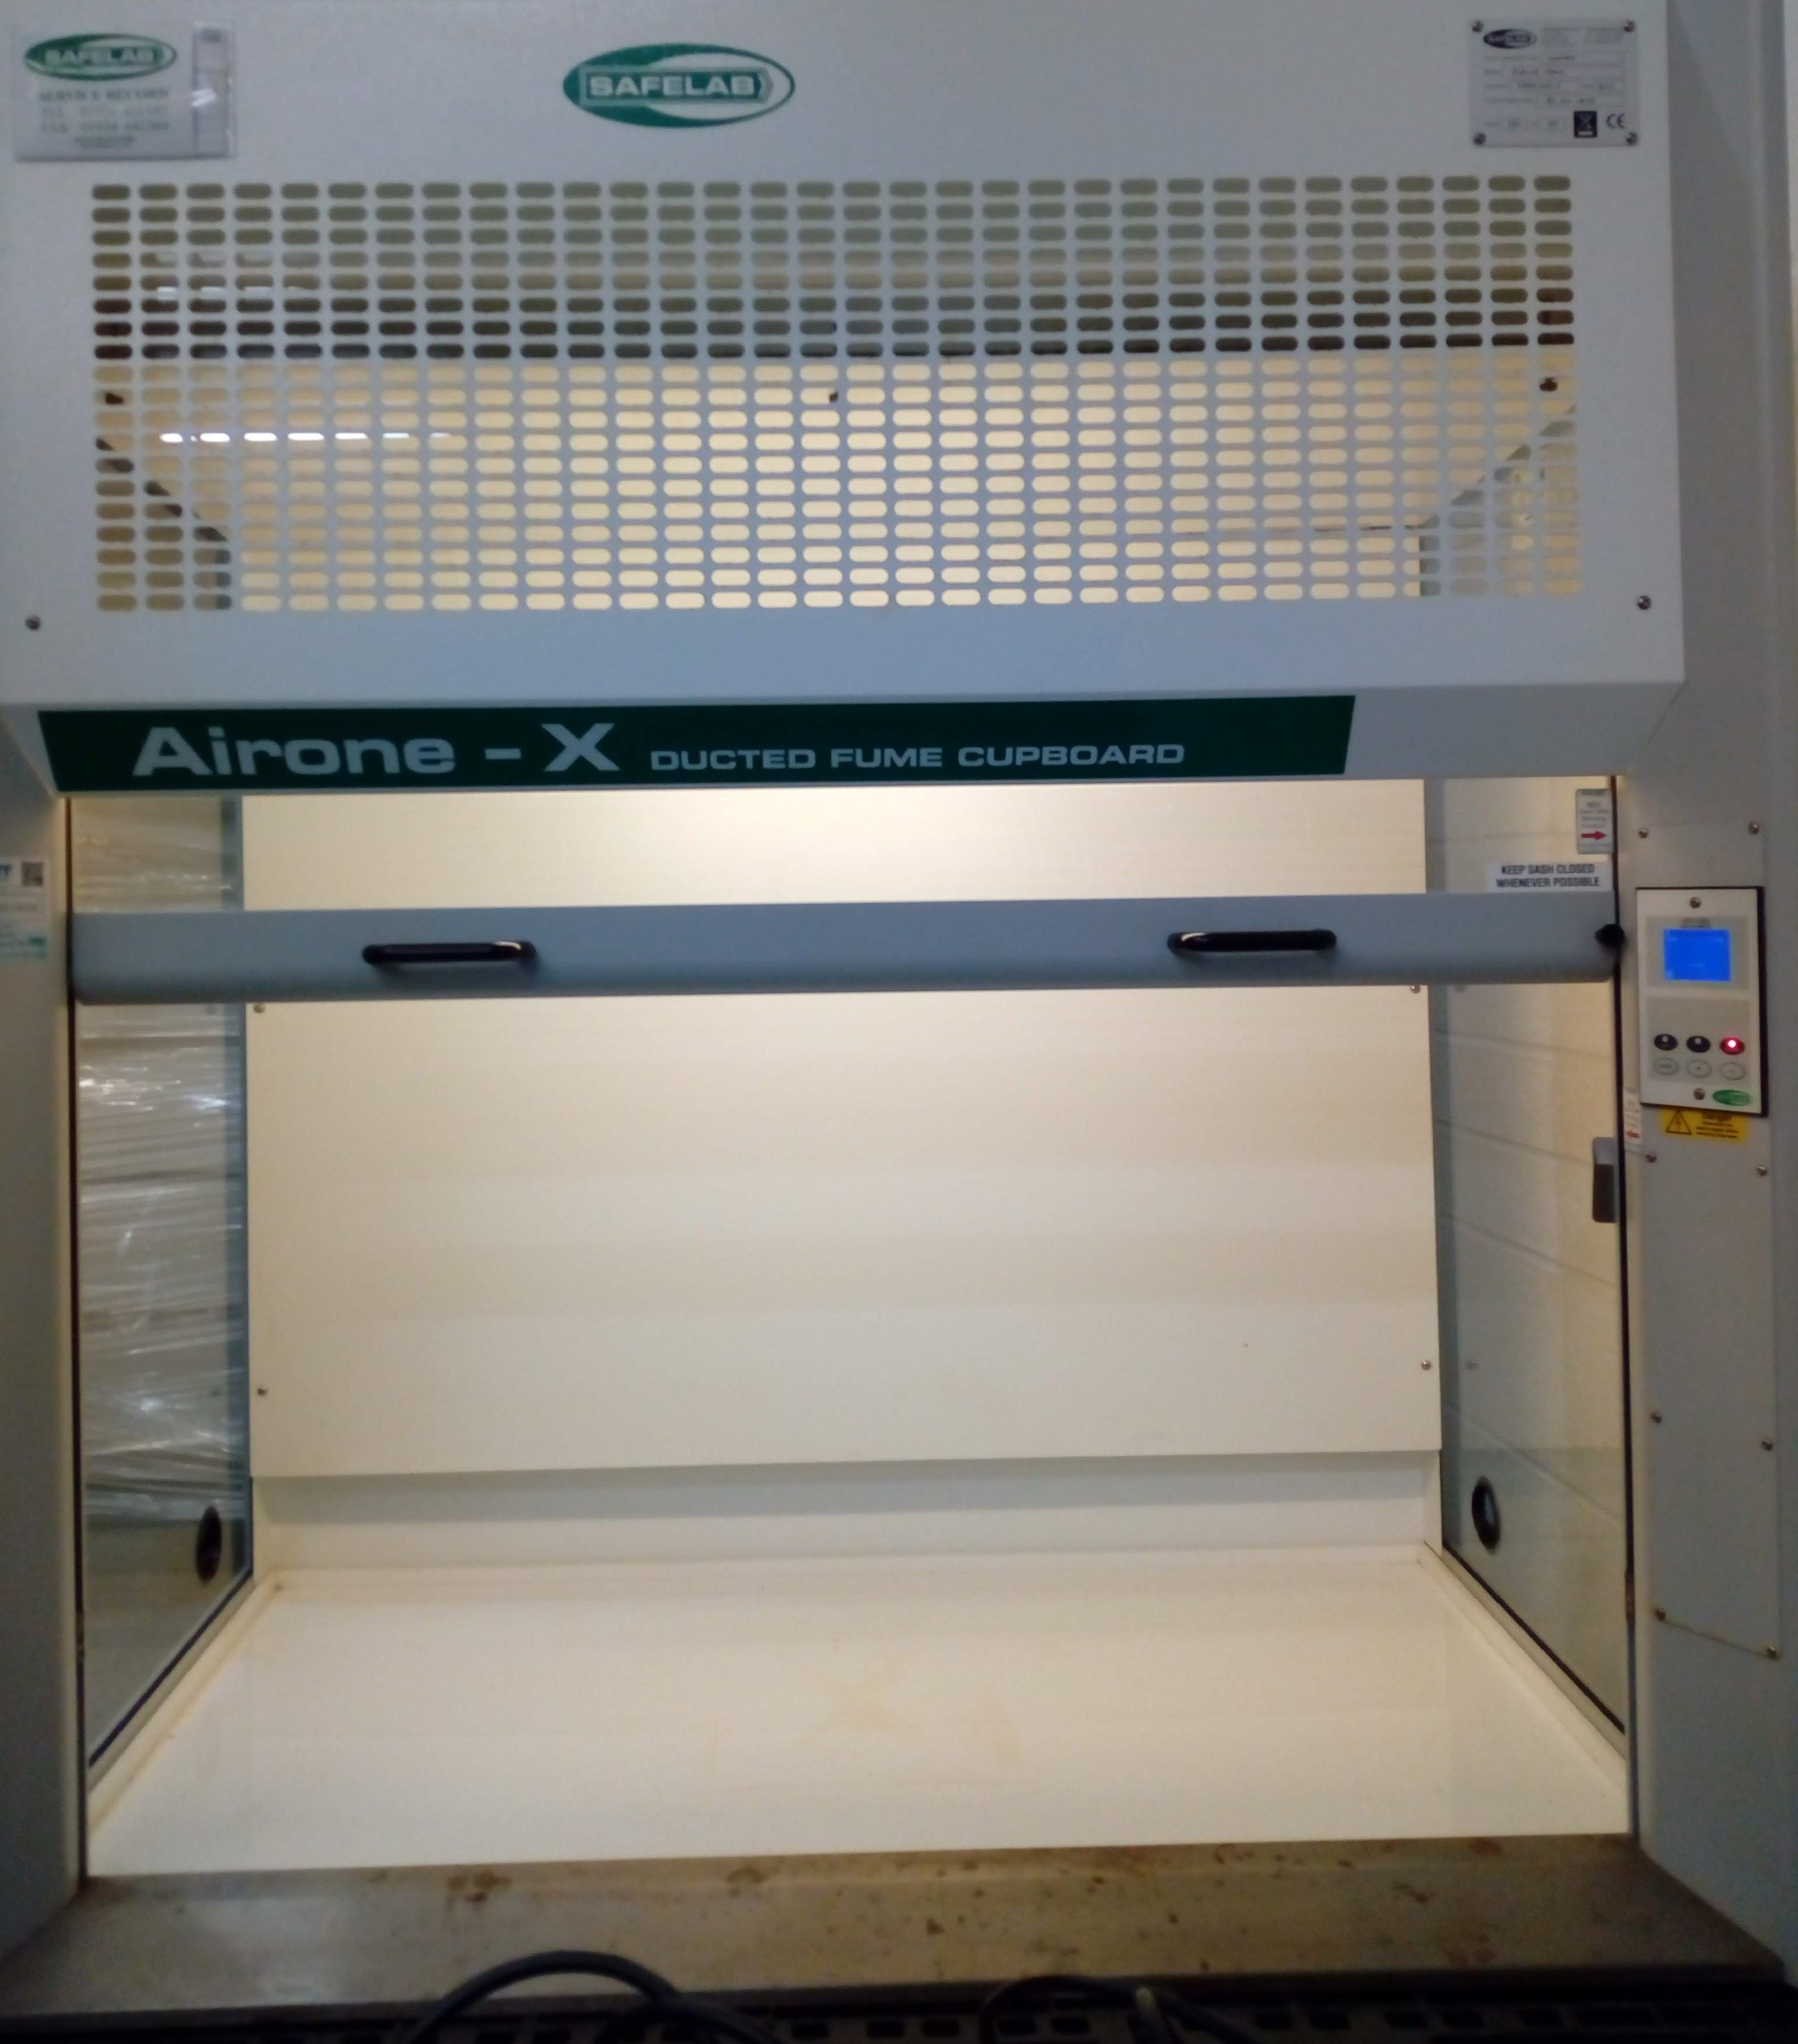 Safelab Airone X Ducted Fume Cupboard